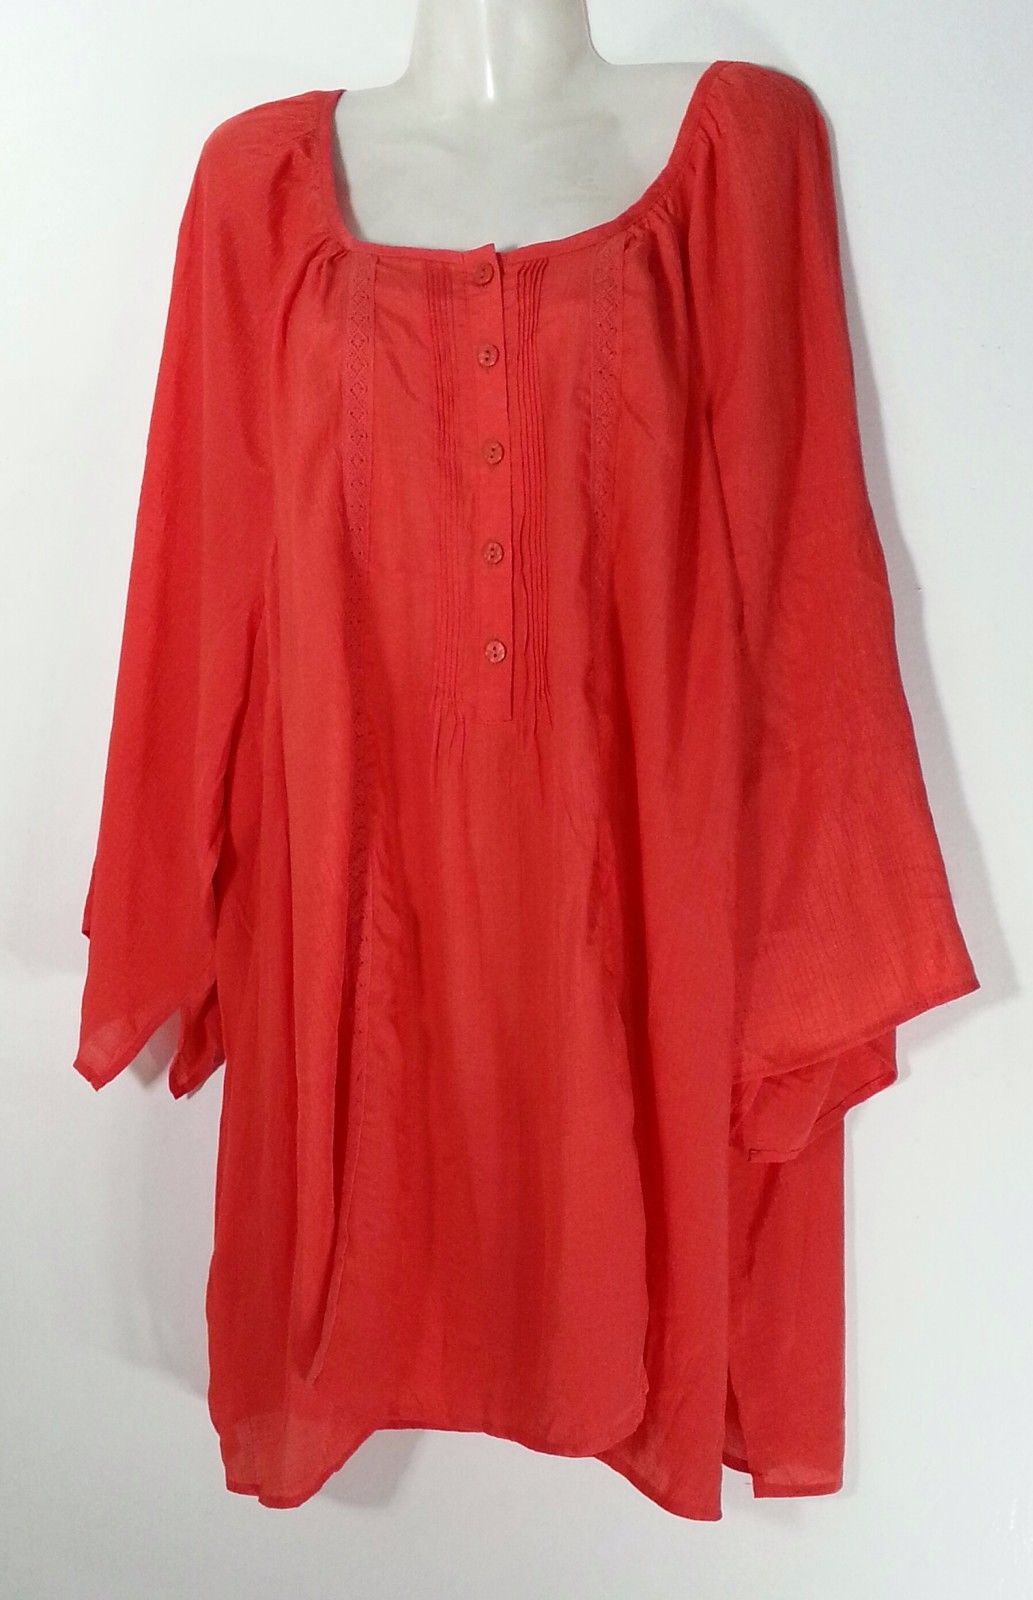 Maggie Barnes For Catherines Coral Top 4x 30 32 Plus Size Treats